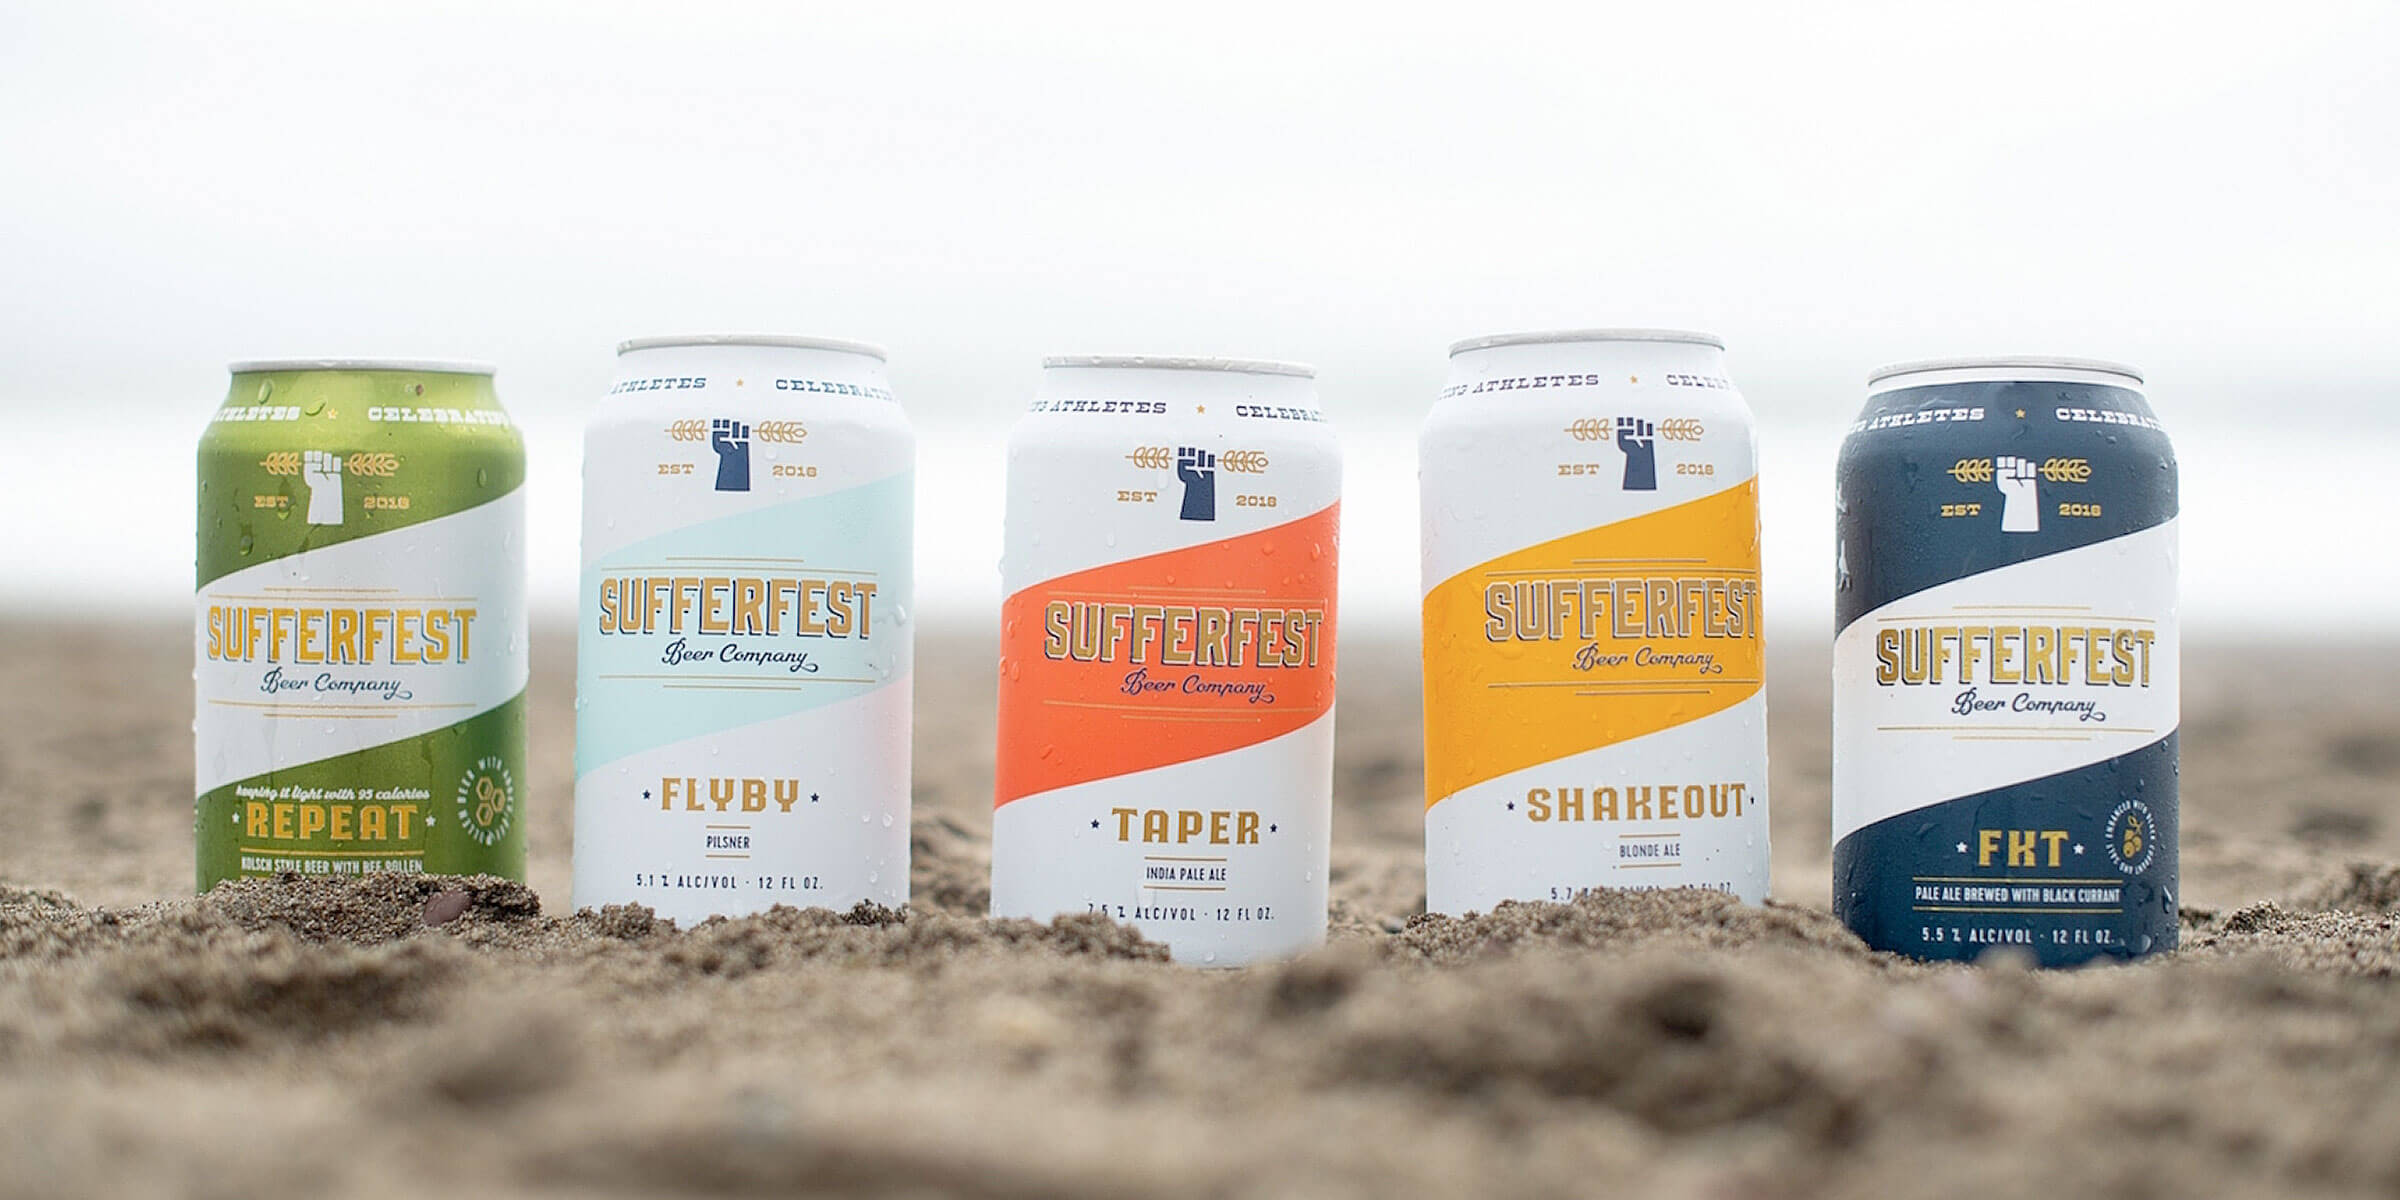 Lineup of canned beers offered by Sufferfest Beer Company